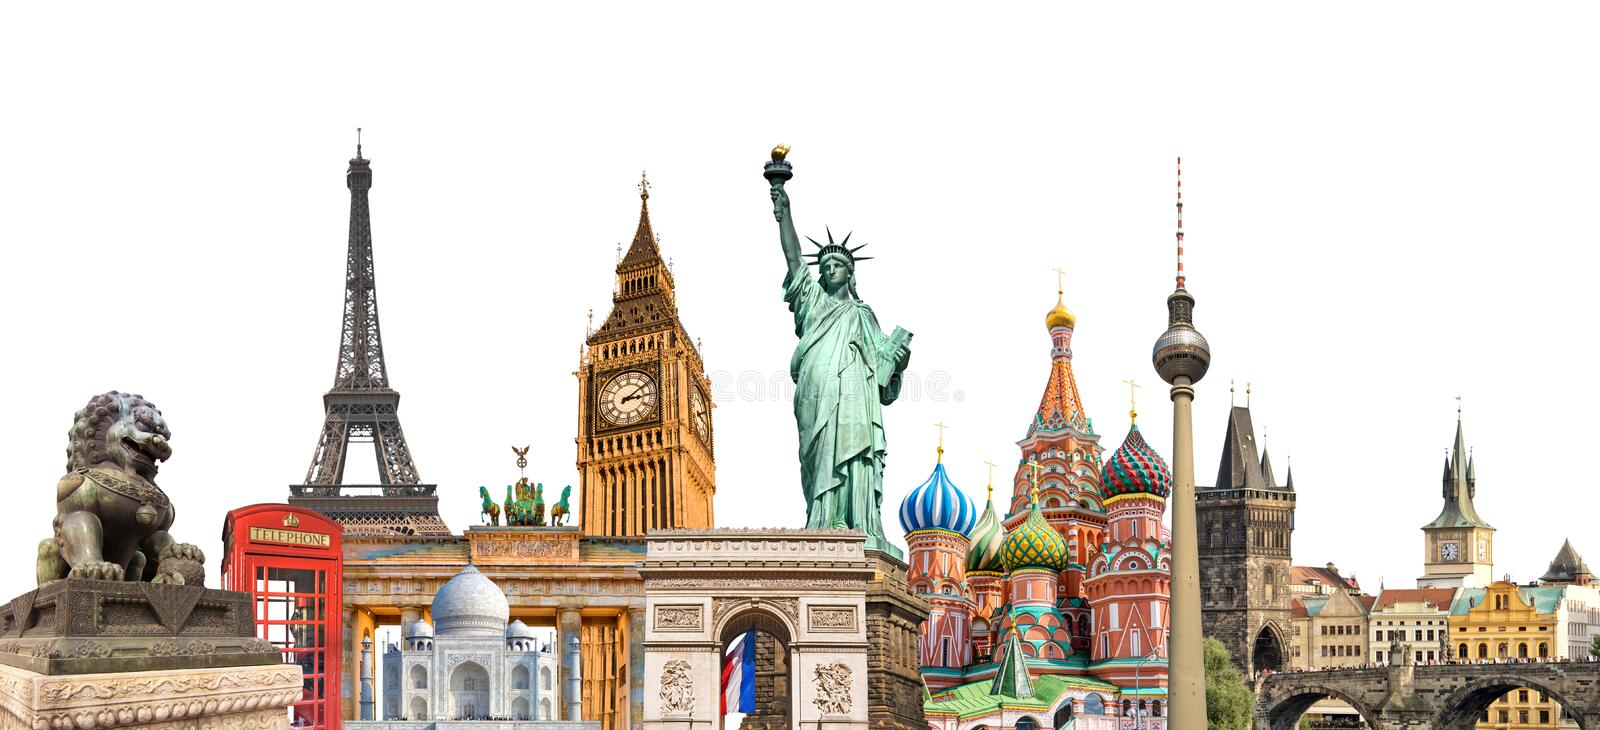 World landmarks photo collage isolated on white background, travel tourism and study around the world concept. World landmarks photo collage isolated on white